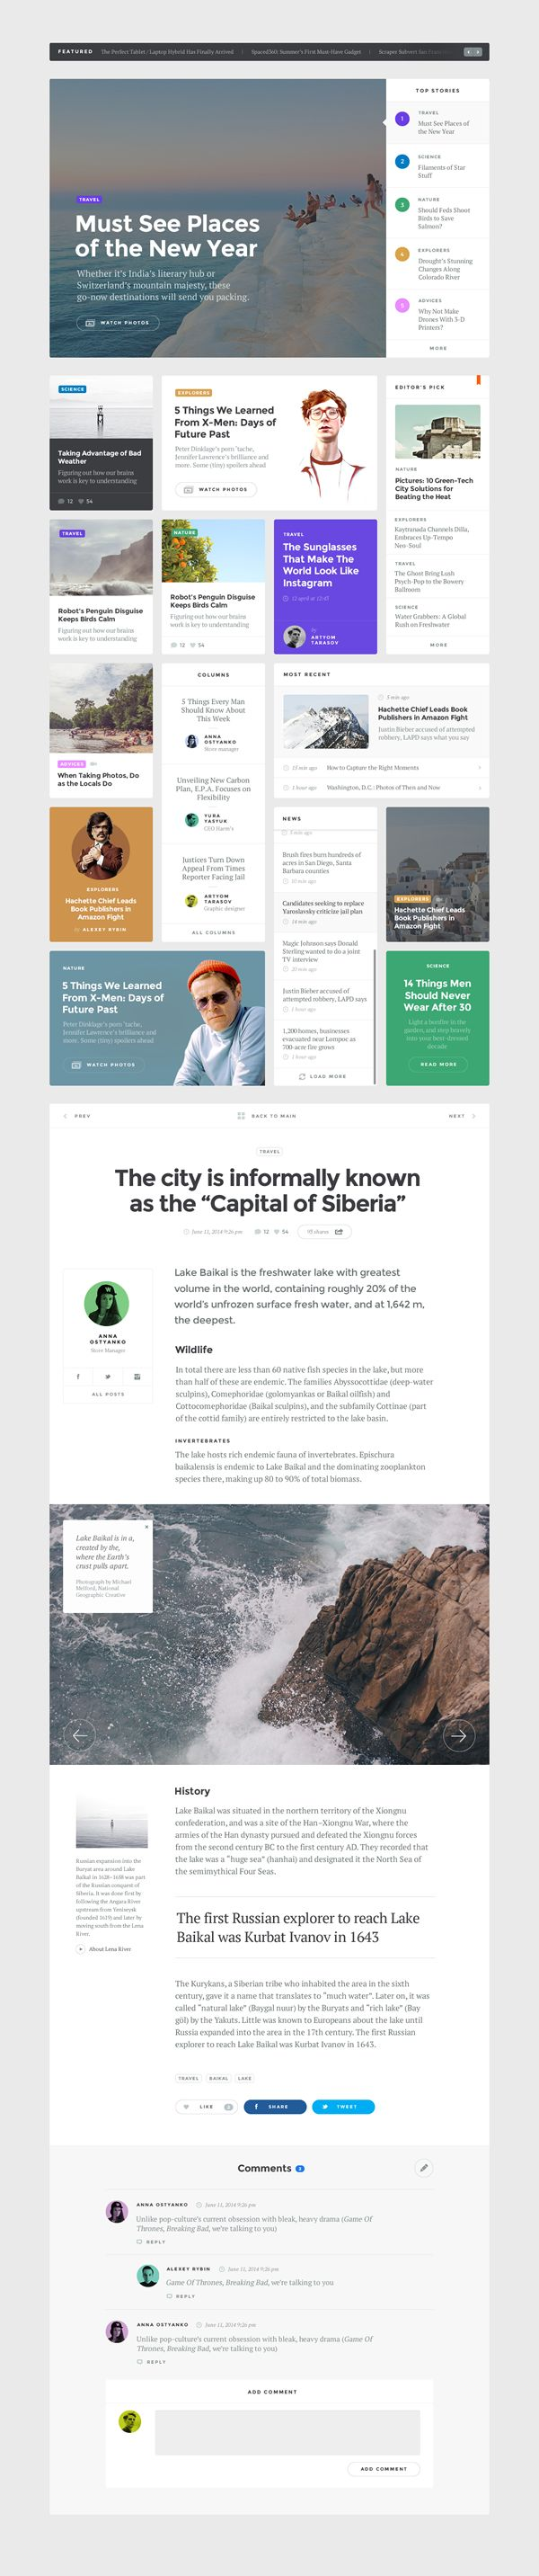 https://dribbble.com/shots/1830641-Baikal-UI-Kit-Blog/attachments/304729